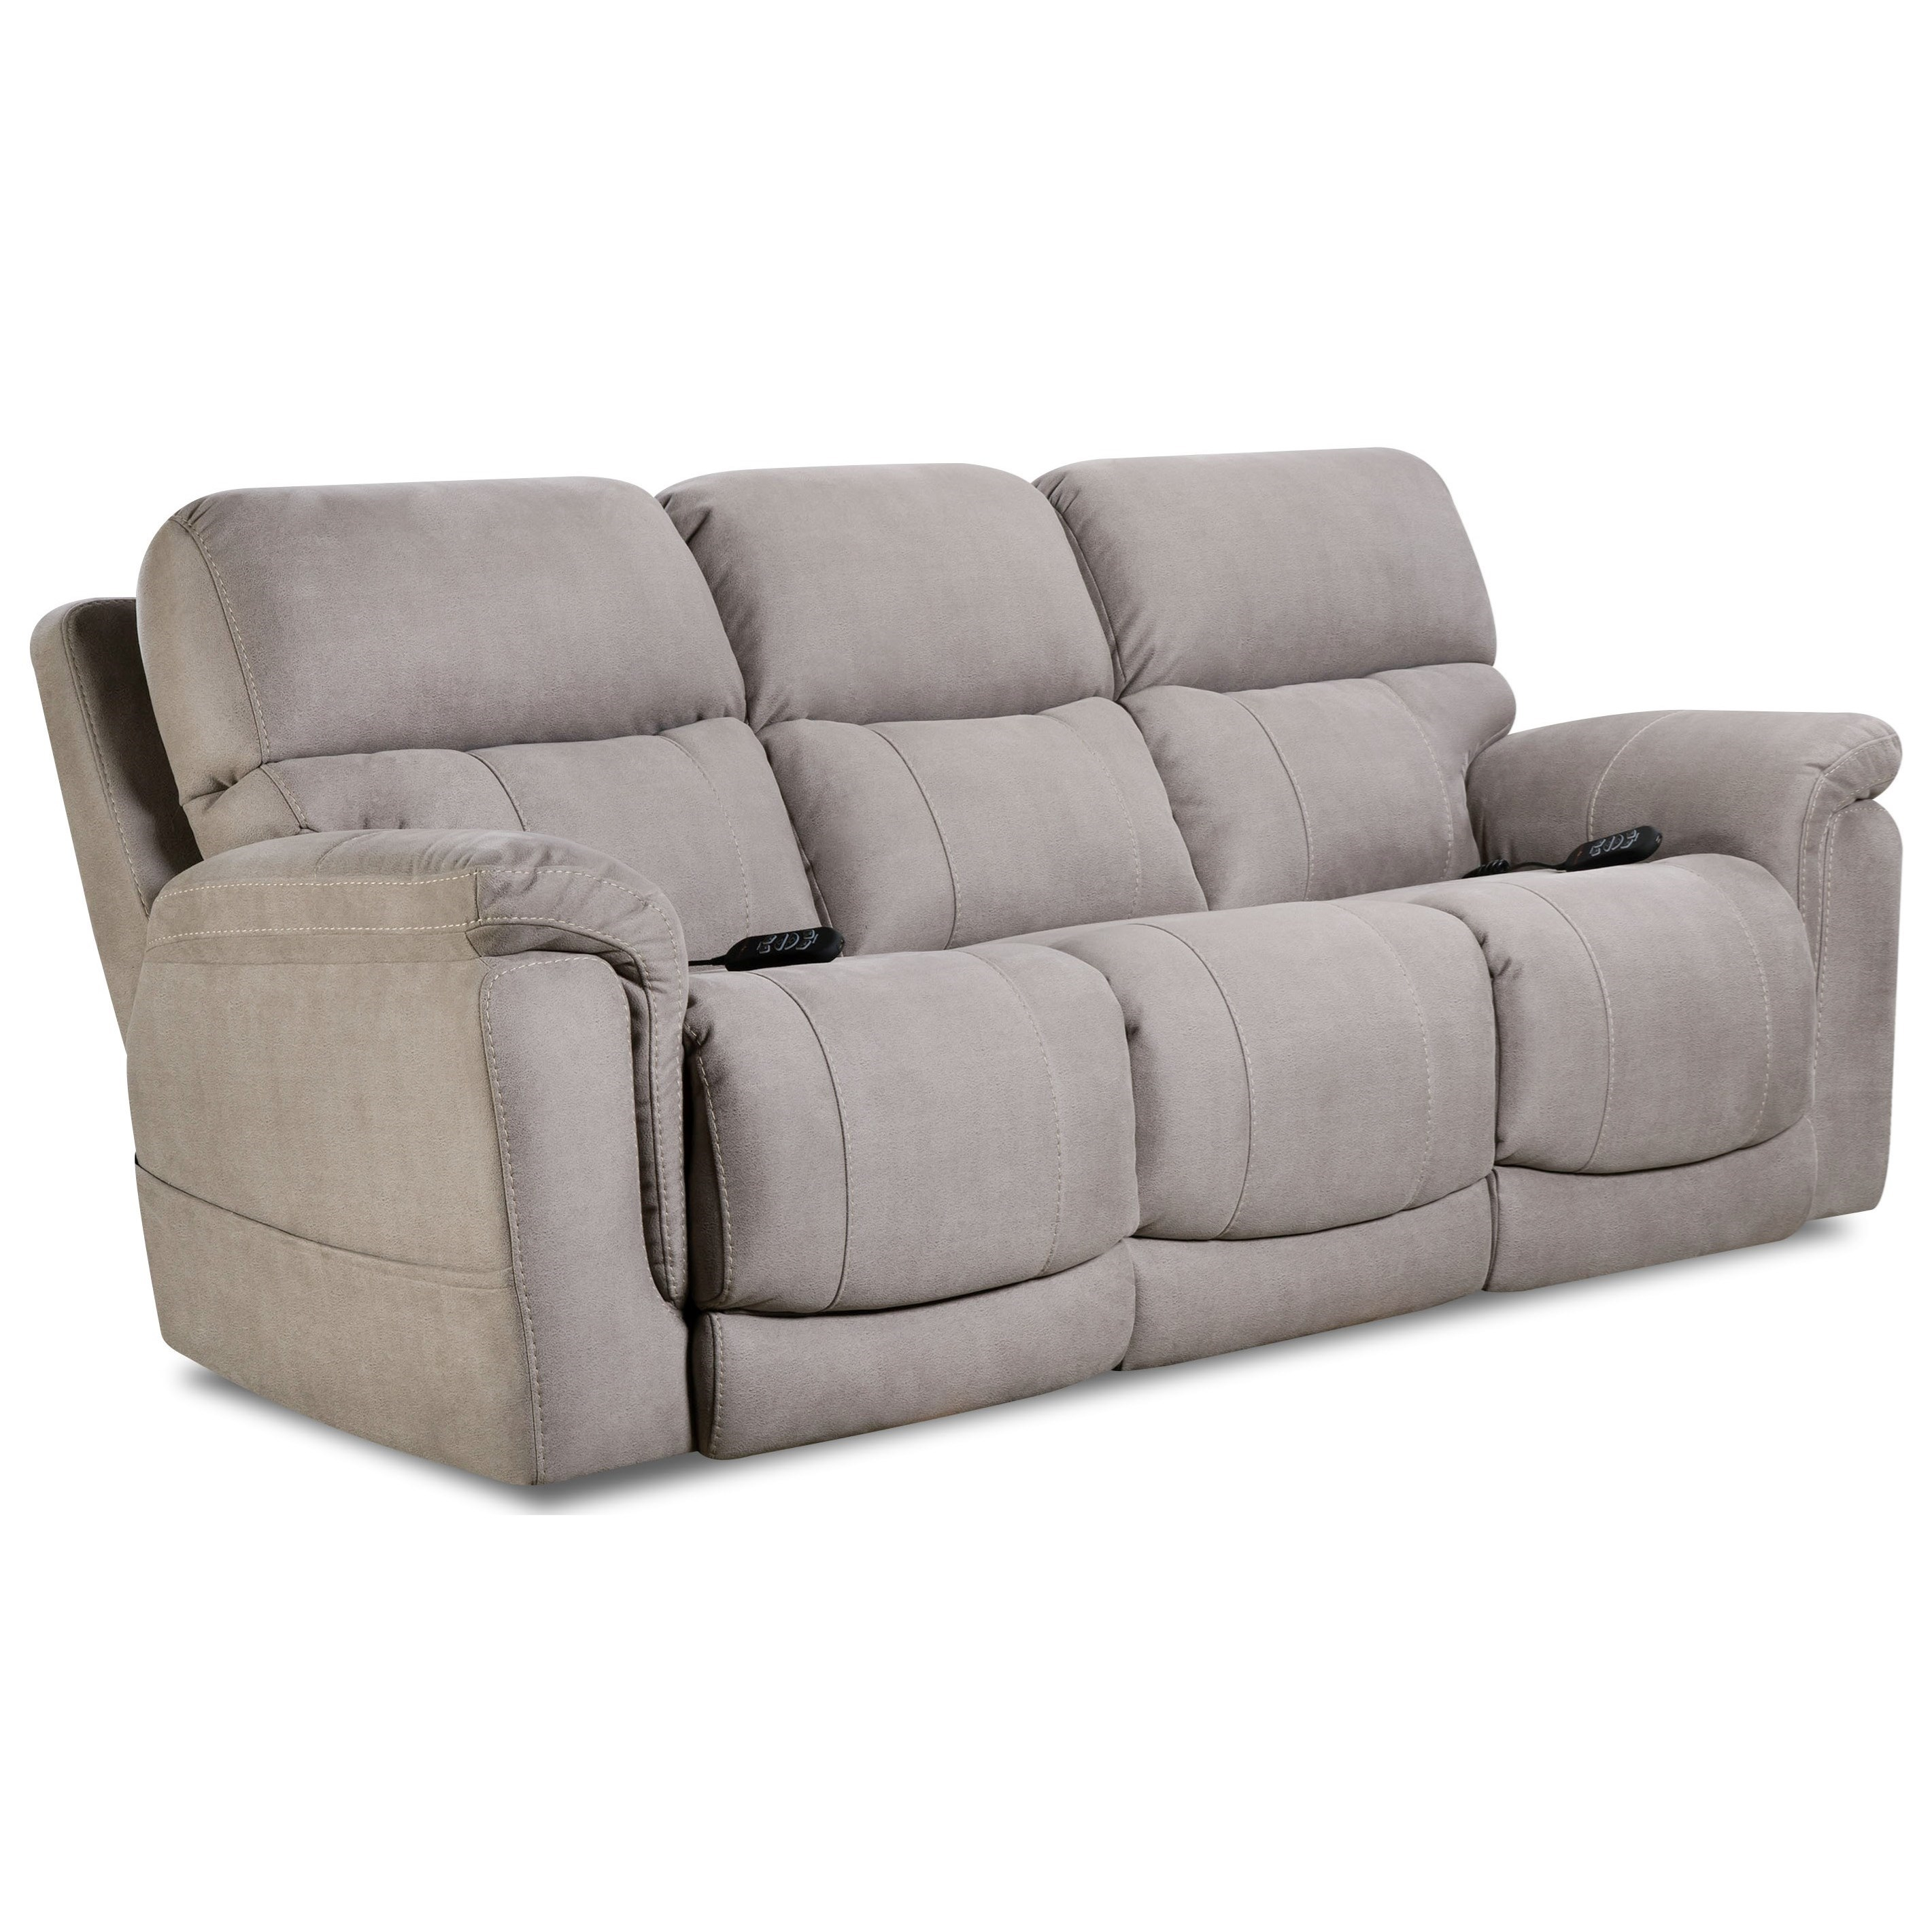 Double Recliner Chair Tampa Double Reclining Power Sofa By Homestretch At John V Schultz Furniture